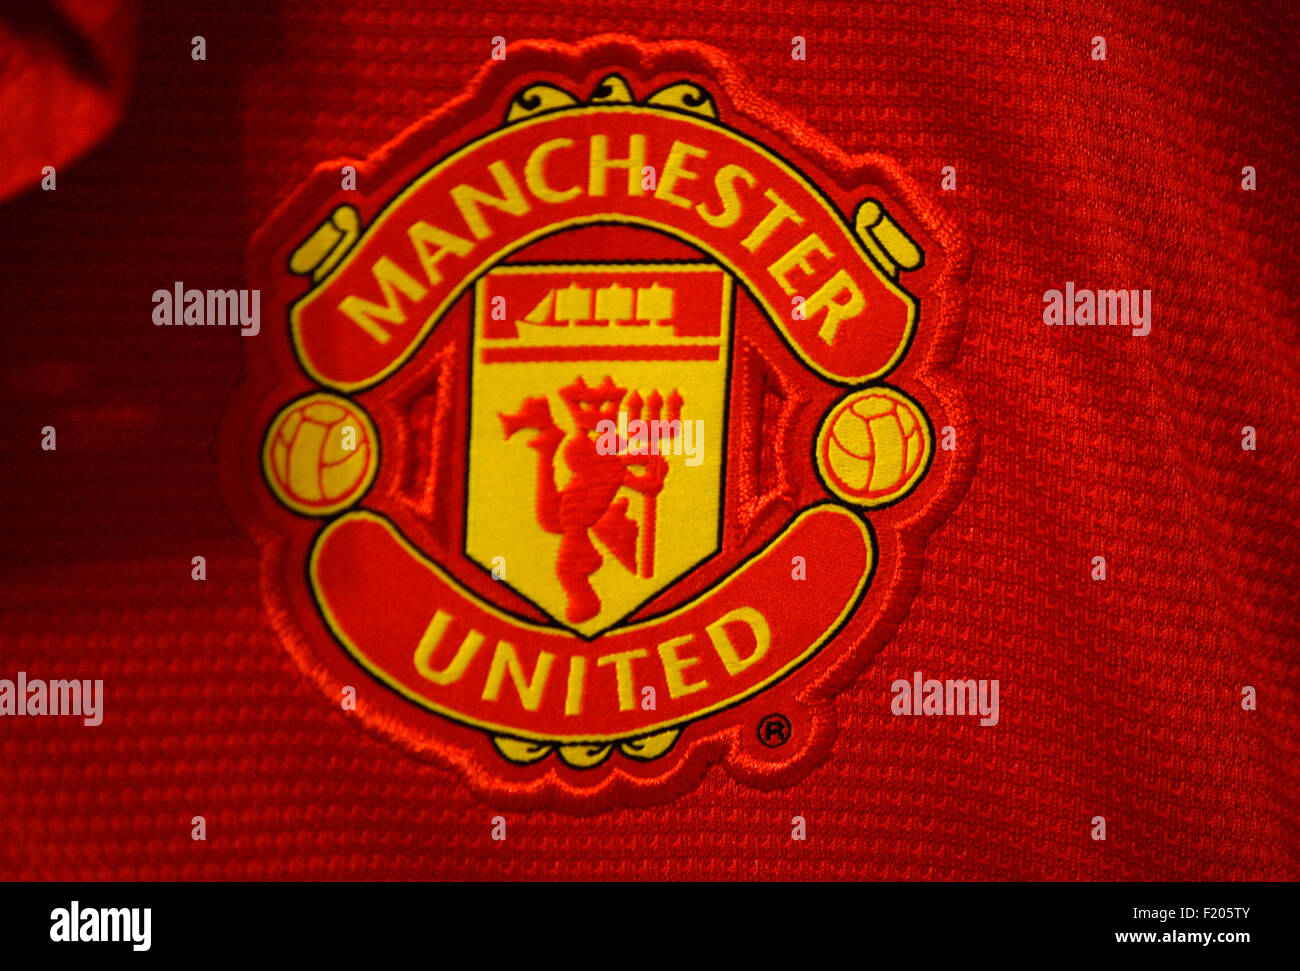 Markenname: 'Manchester United', Berlin. - Stock Image